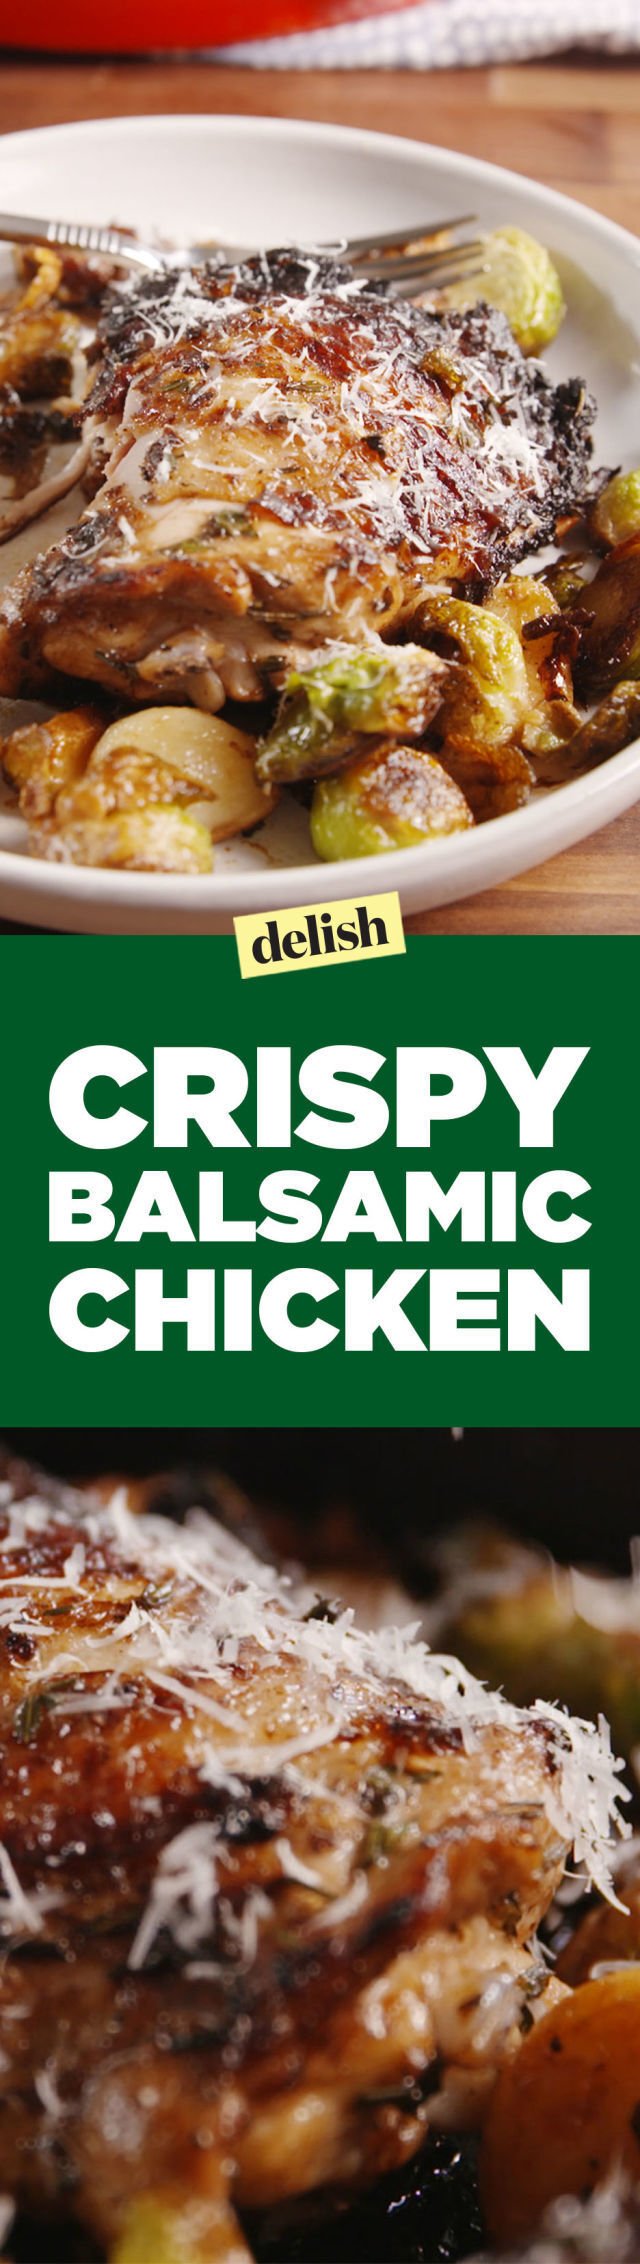 Crispy Balsamic Chicken